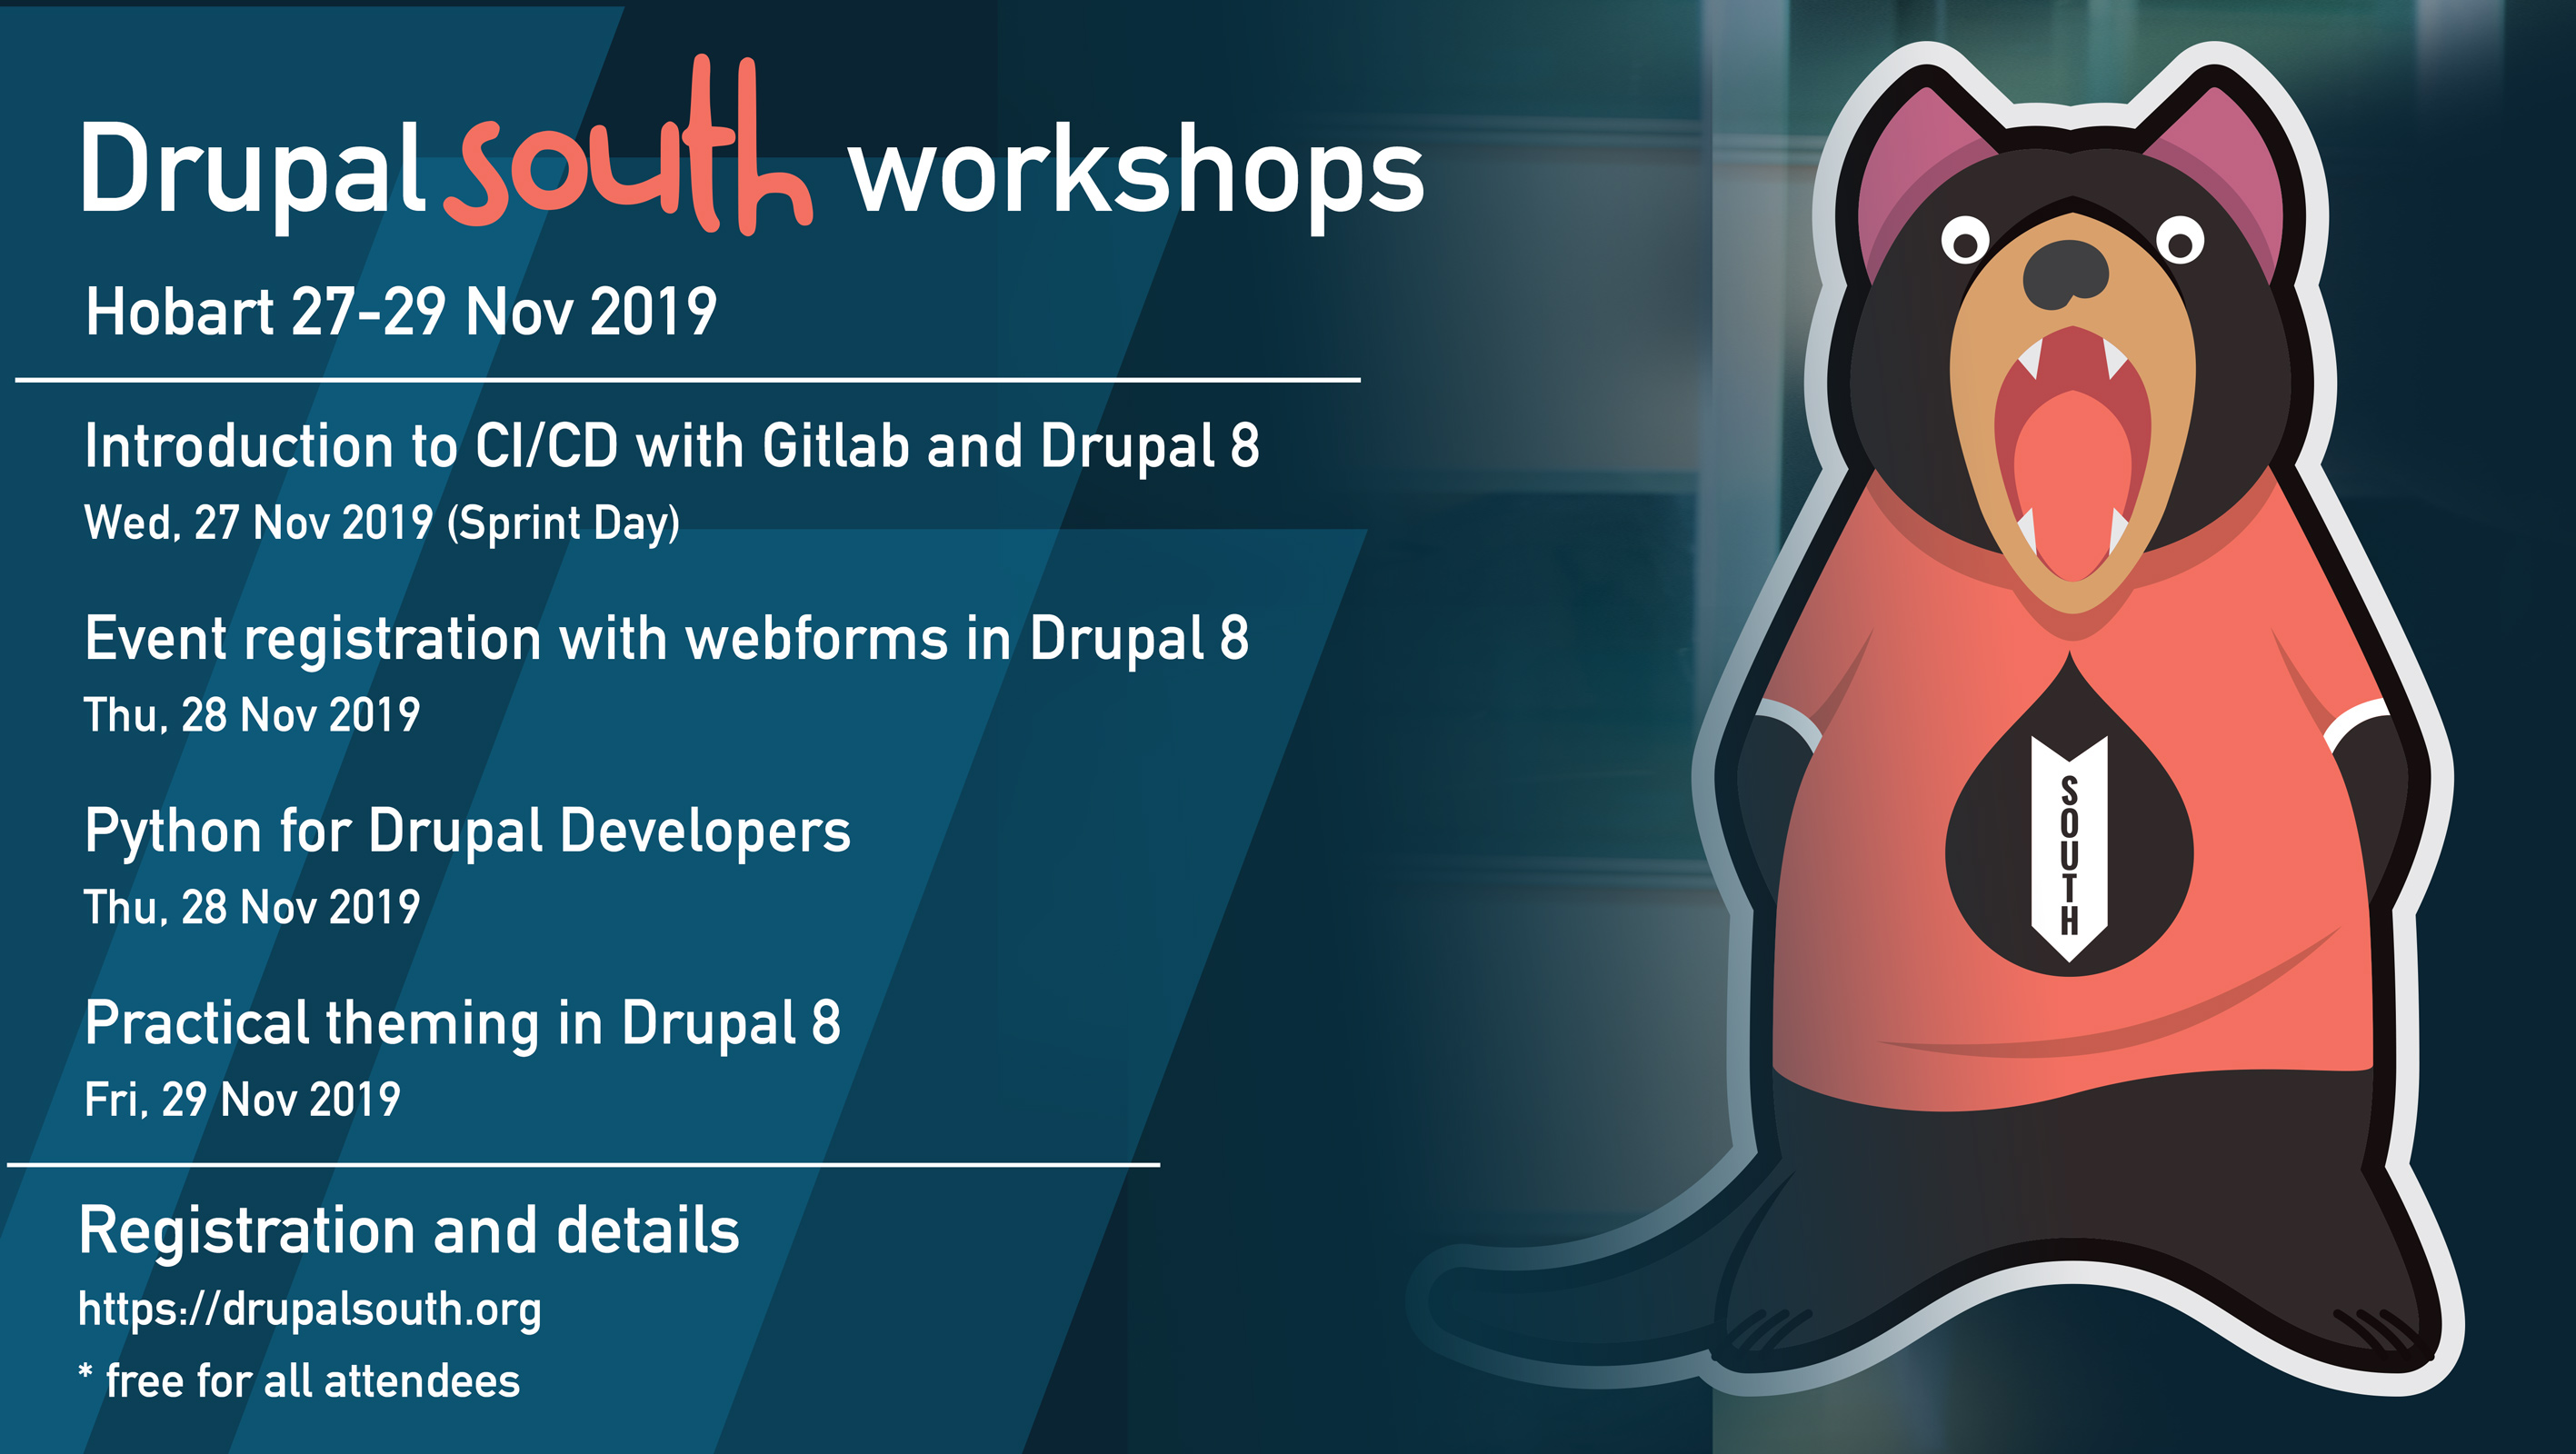 DrupalSouth training